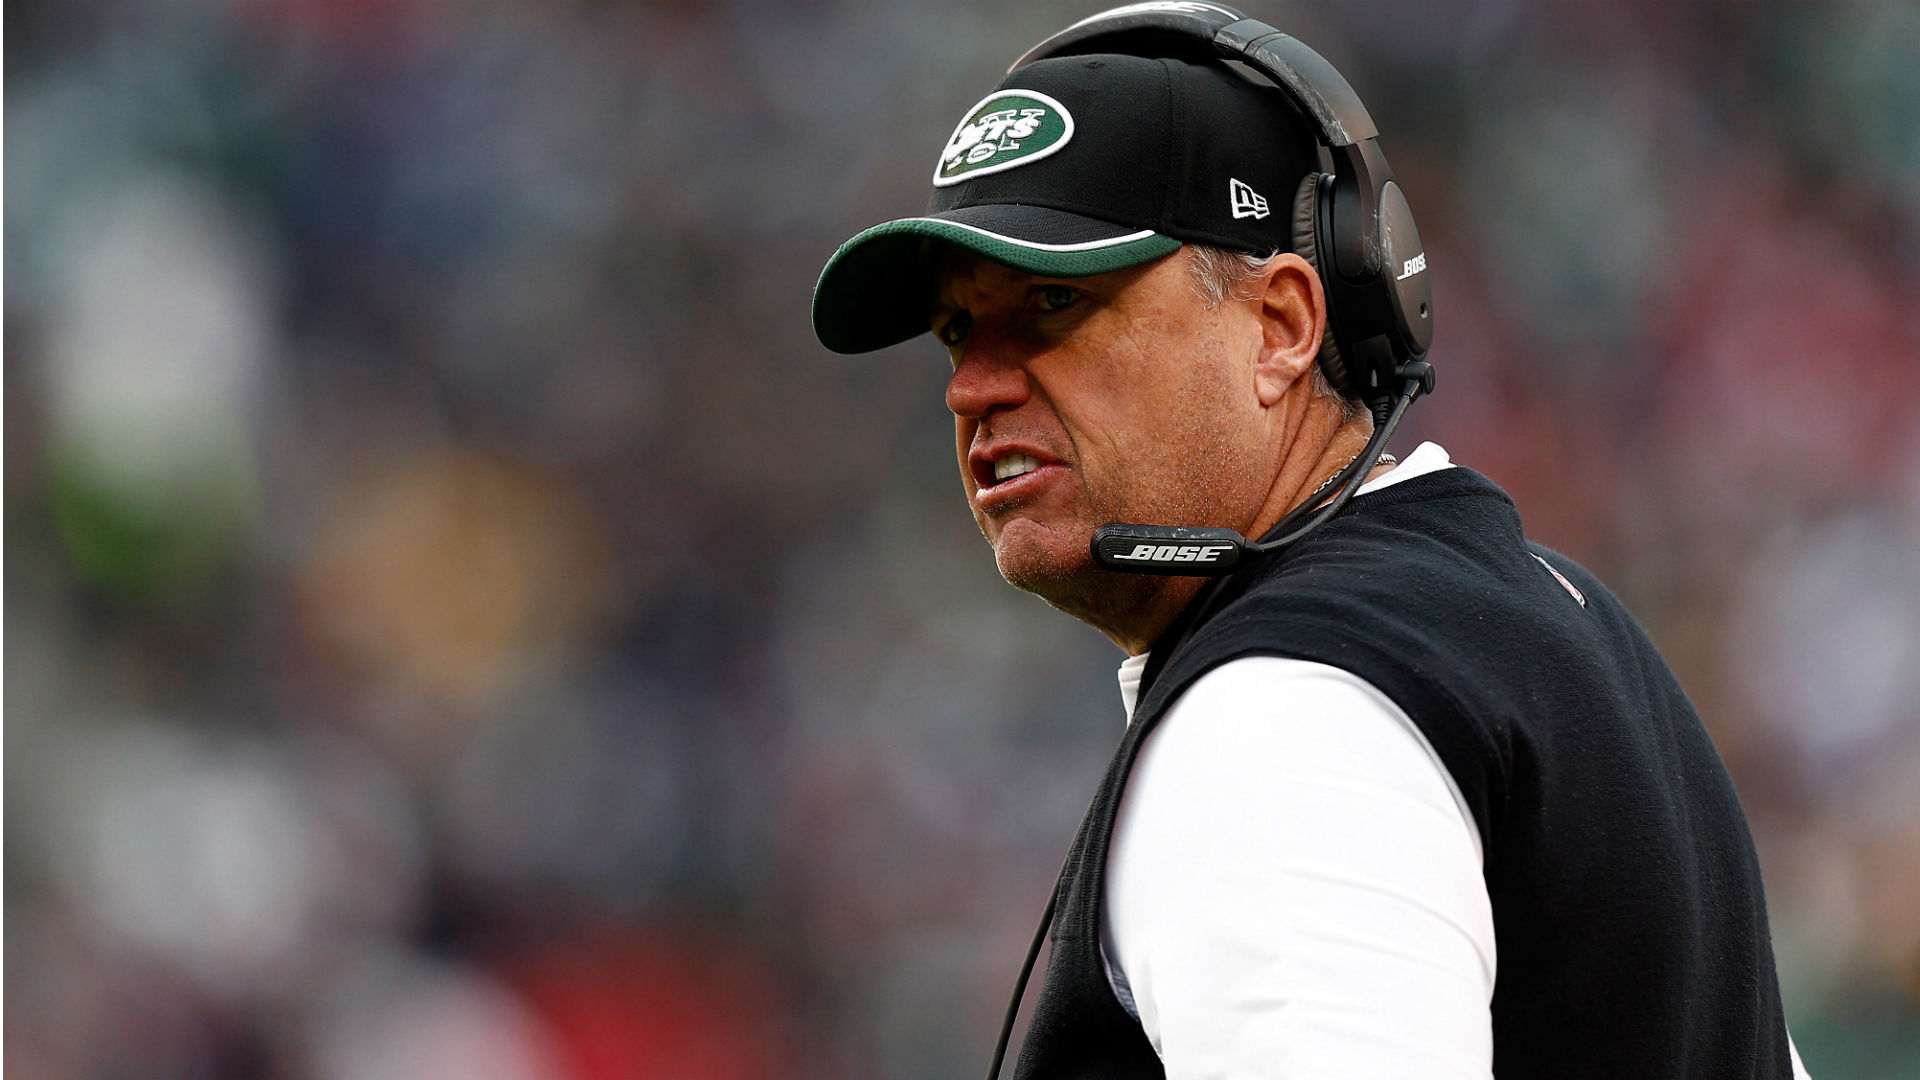 Rex Ryan: Jets wanted me to 'take more of a backseat role'